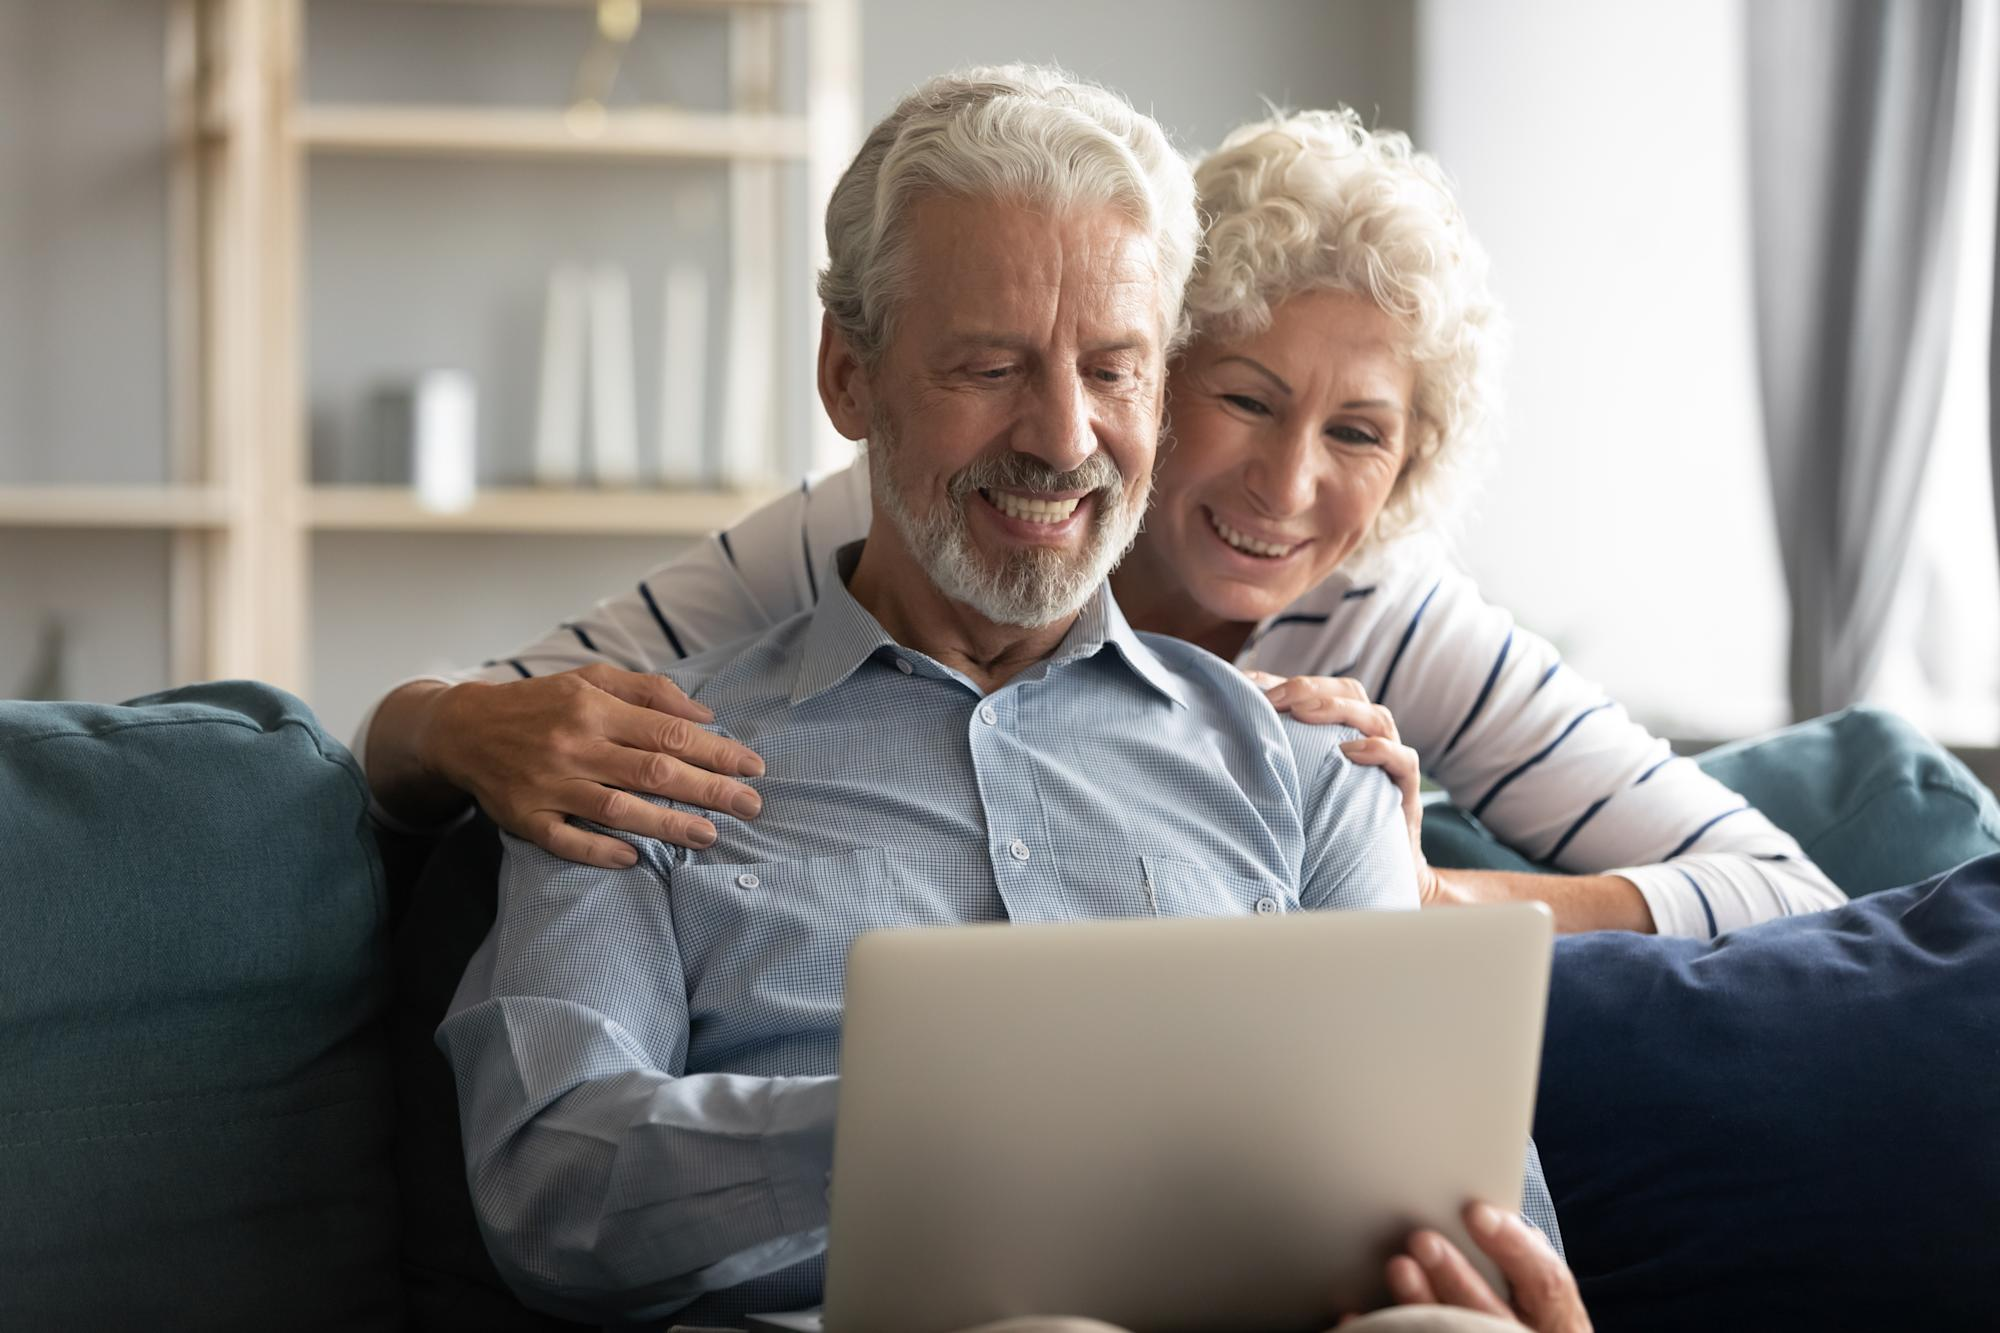 Over 60? Then you're a prime target for online fraud—here are 5 crucial  ways to prevent it